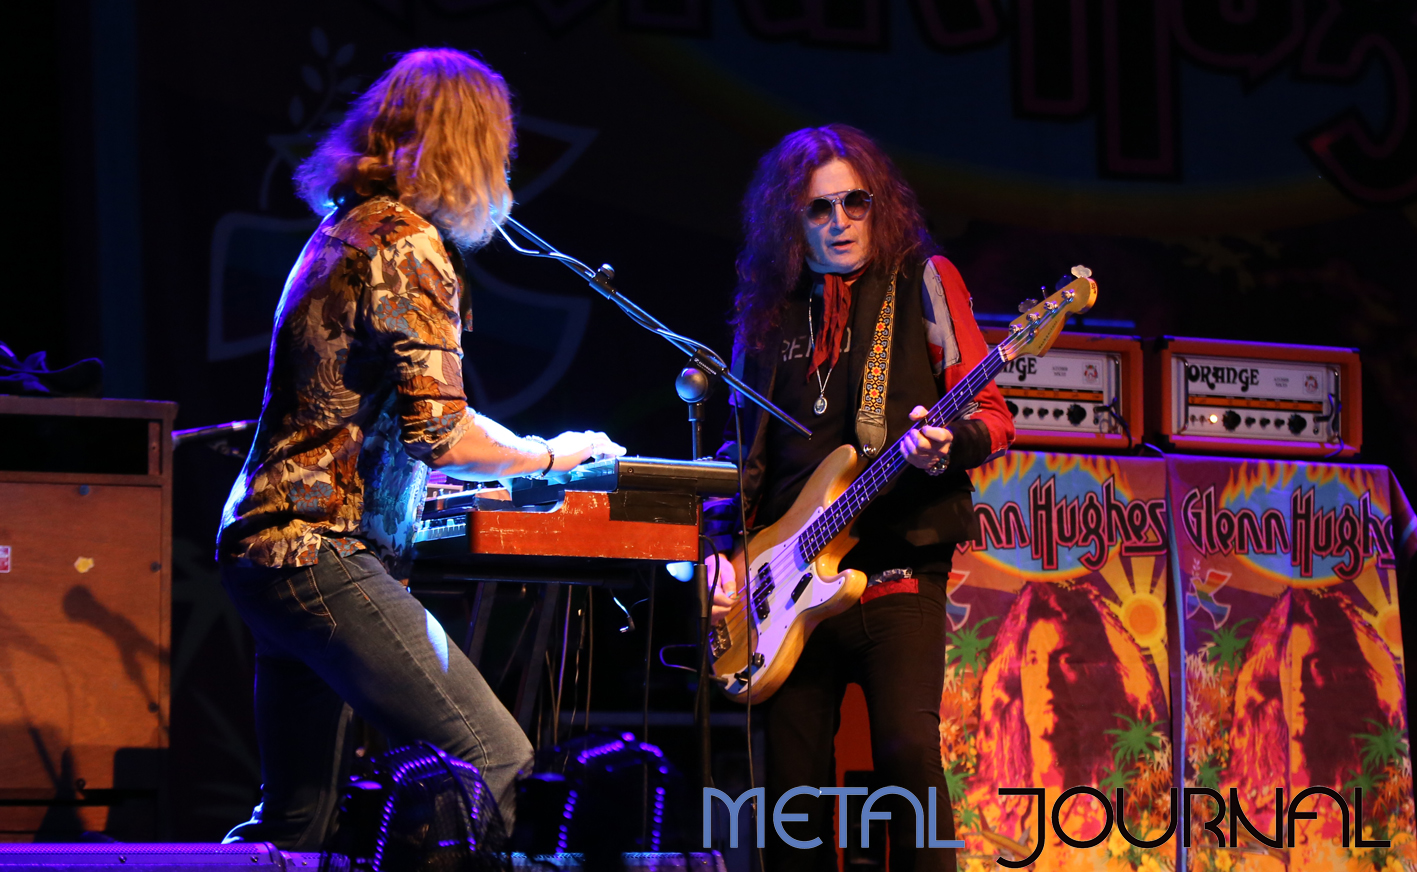 glenn hughes - metal journal pic 4